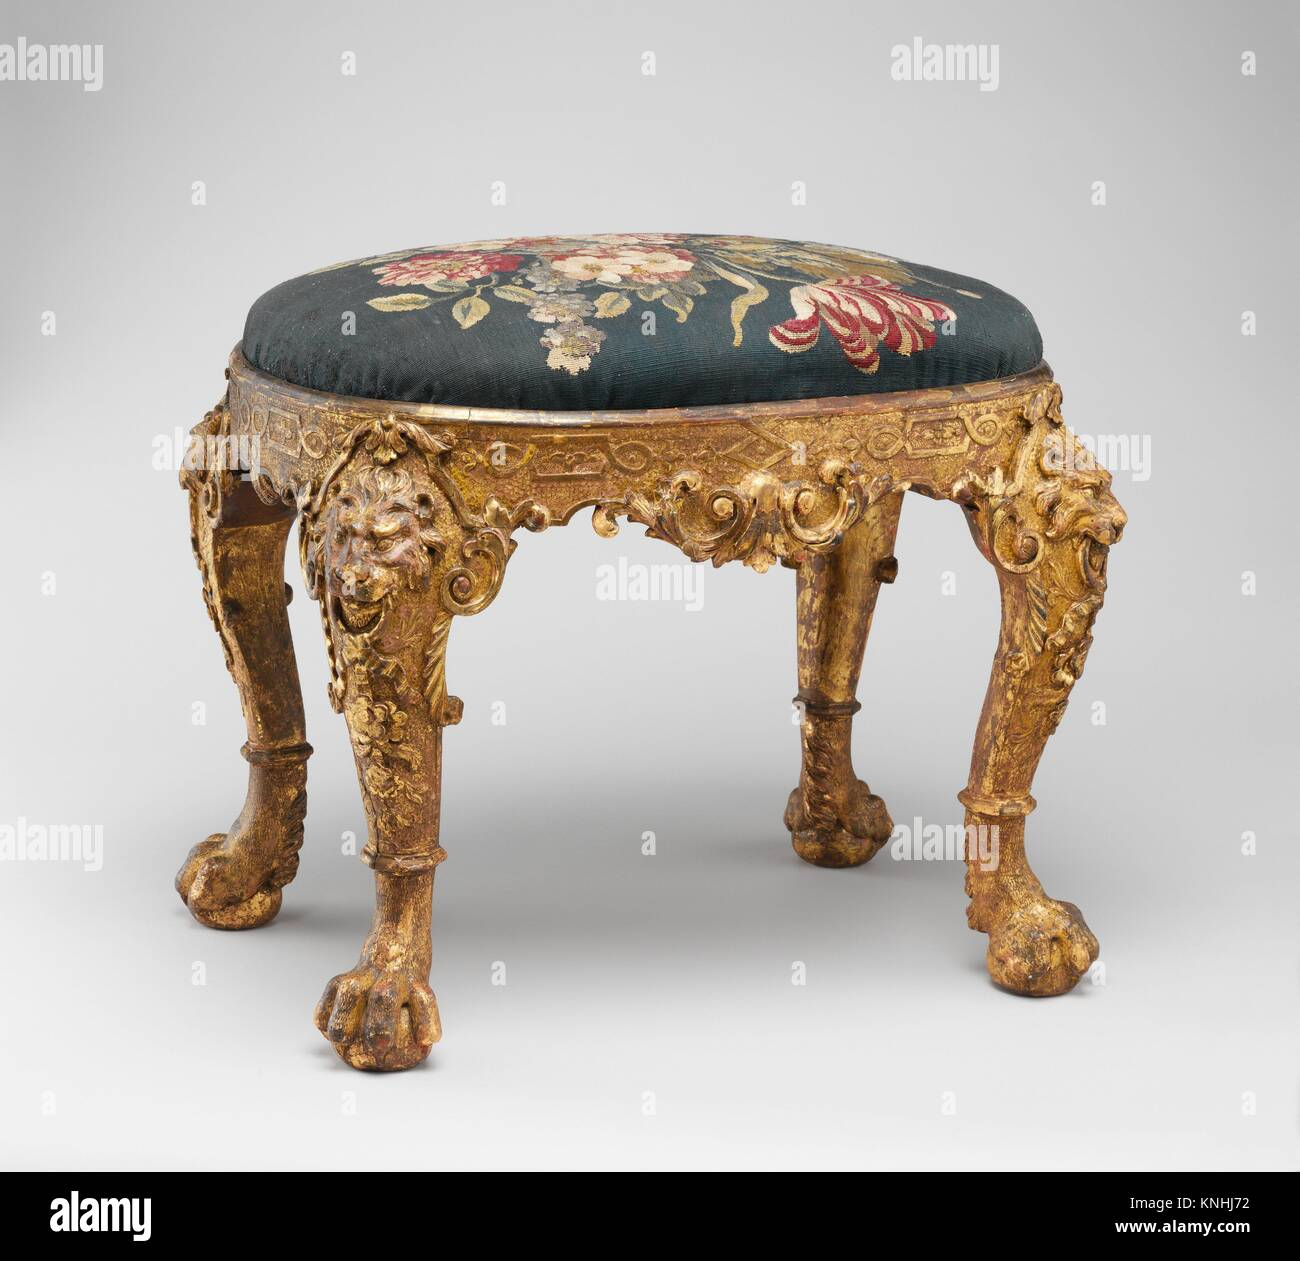 Stool. Factory: Tapestry woven at Soho; Date: ca. 1725-35; Culture: British; Medium: Gilded gesso on walnut; wool - Stock Image